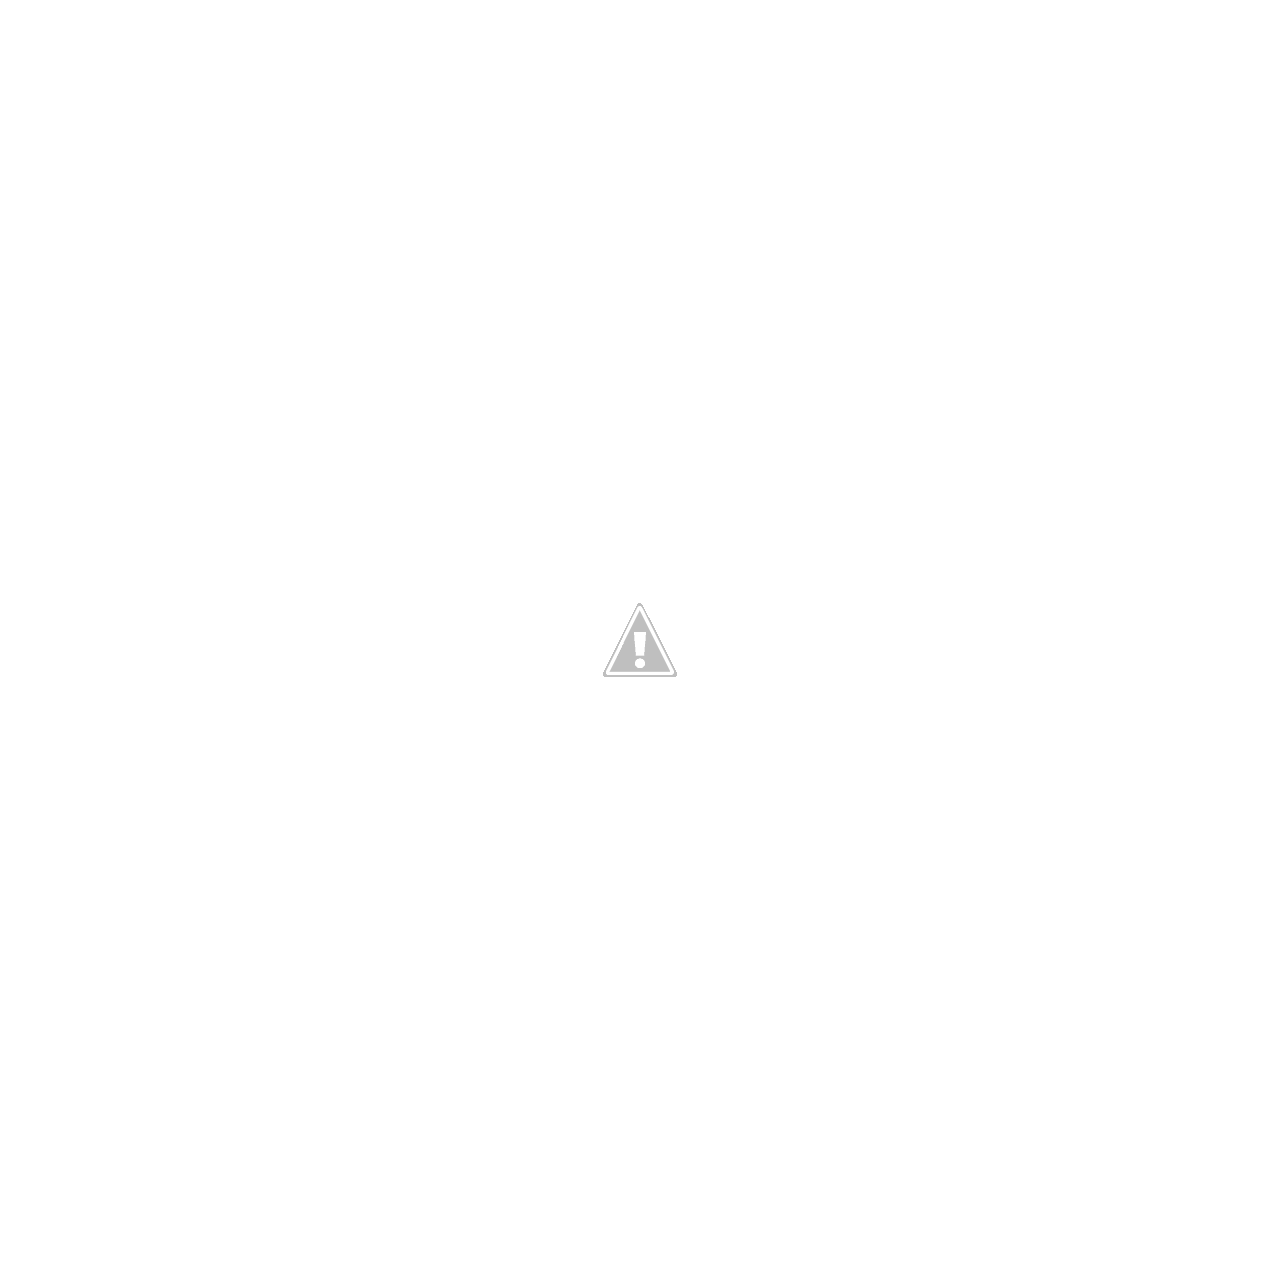 Ps4 Gaming Store Pakistan - Video Game Store in Karachi